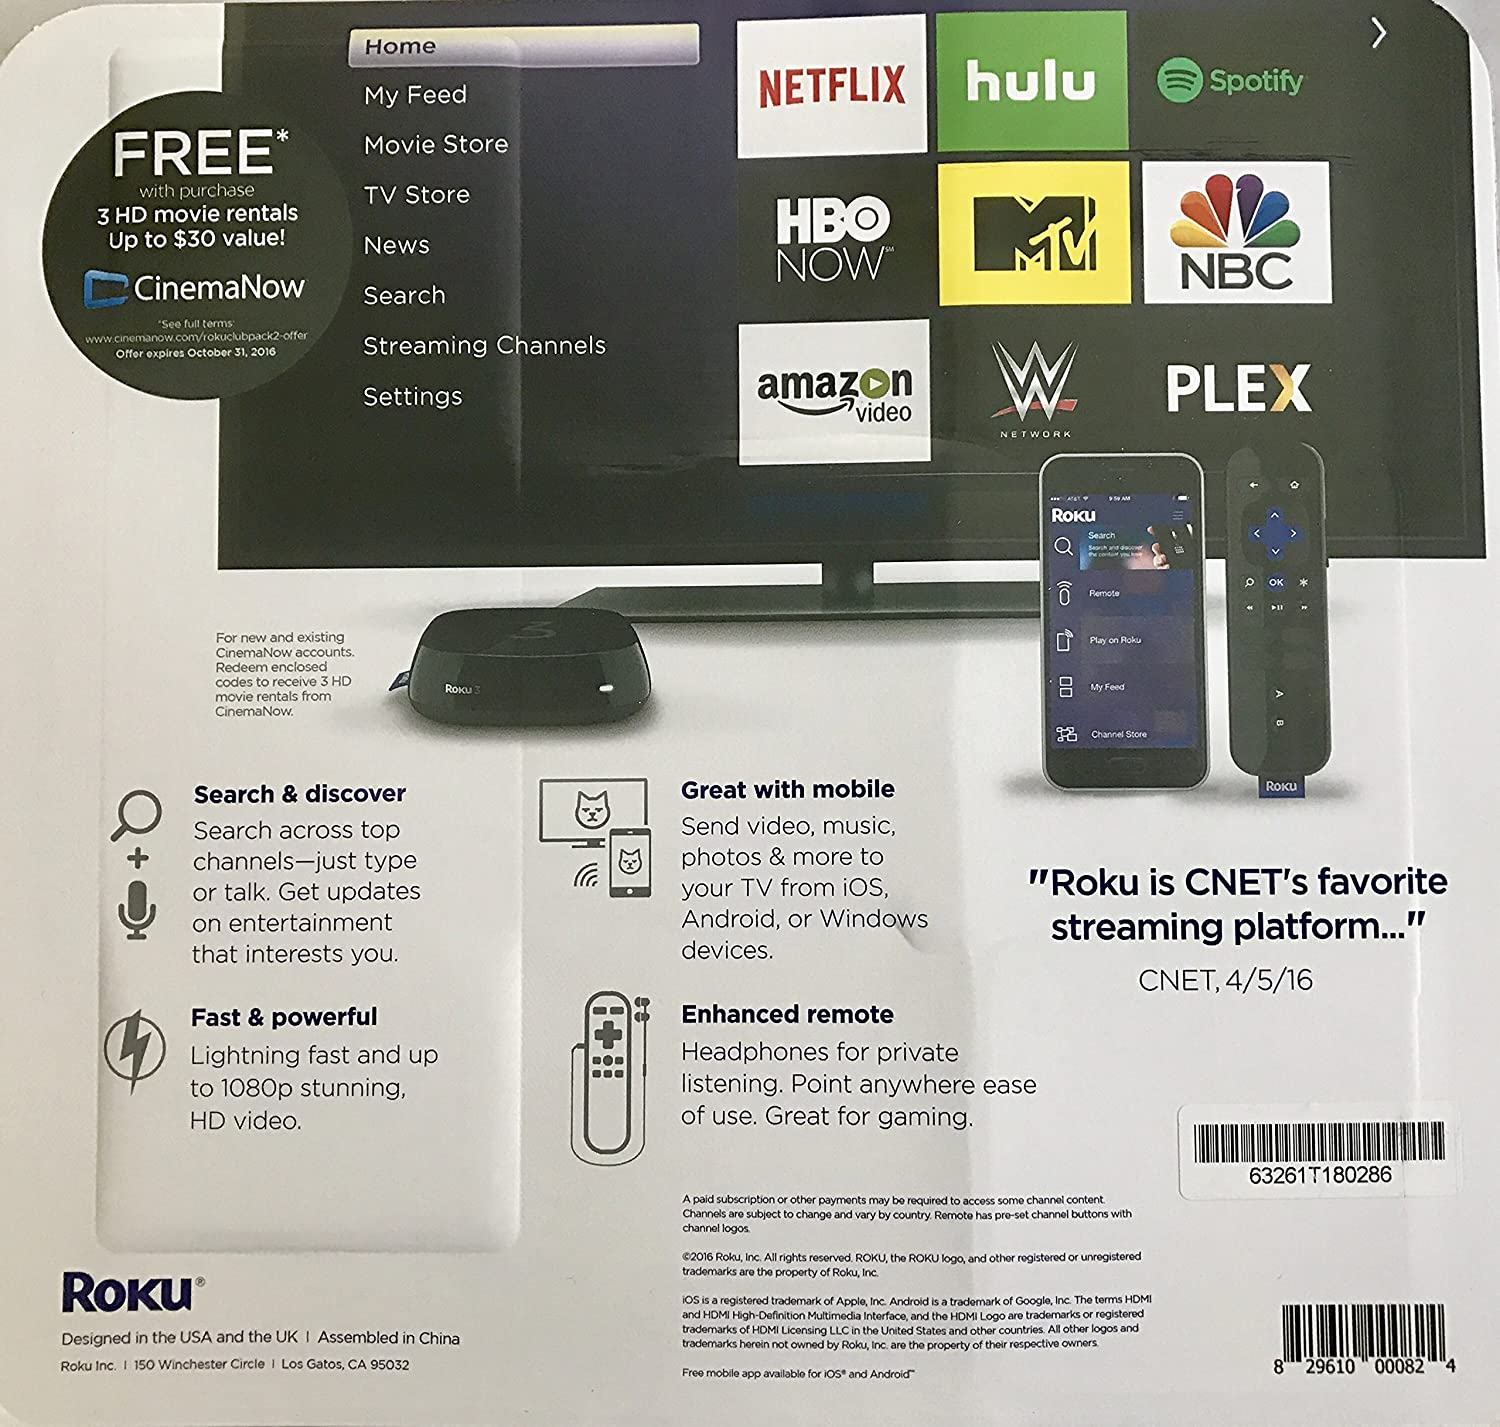 Roku 3 Streaming Media Player (4230R) With Voice Search (2015 model) Bundled with HDMI Cable and 3 HD Movie Rentals with CinemaNow